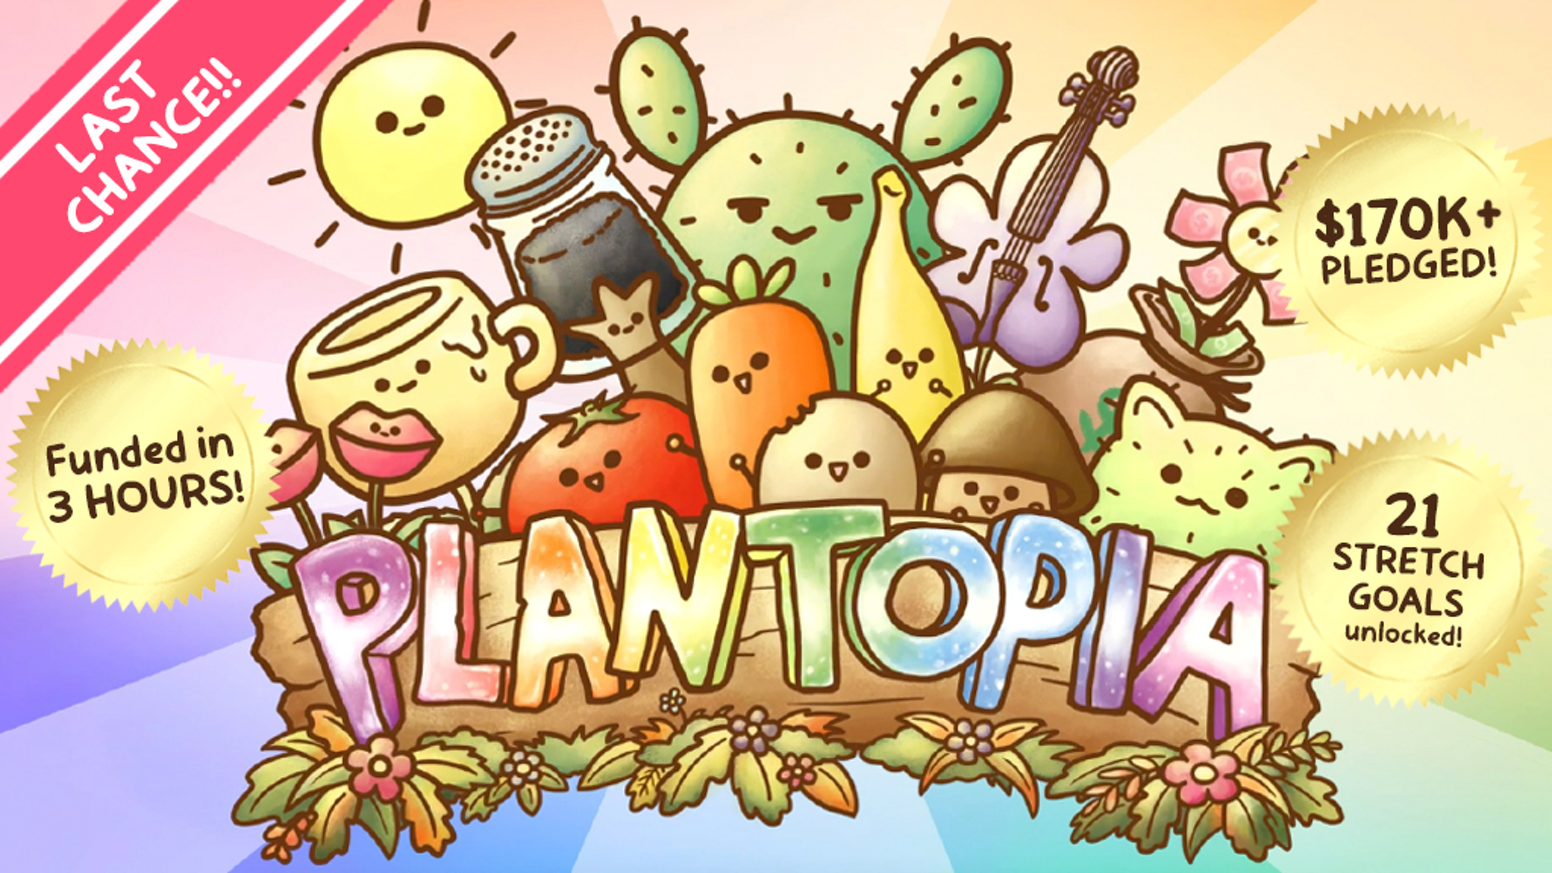 A strategic card game based on the wonderful and wacky world of Life of a Potato.